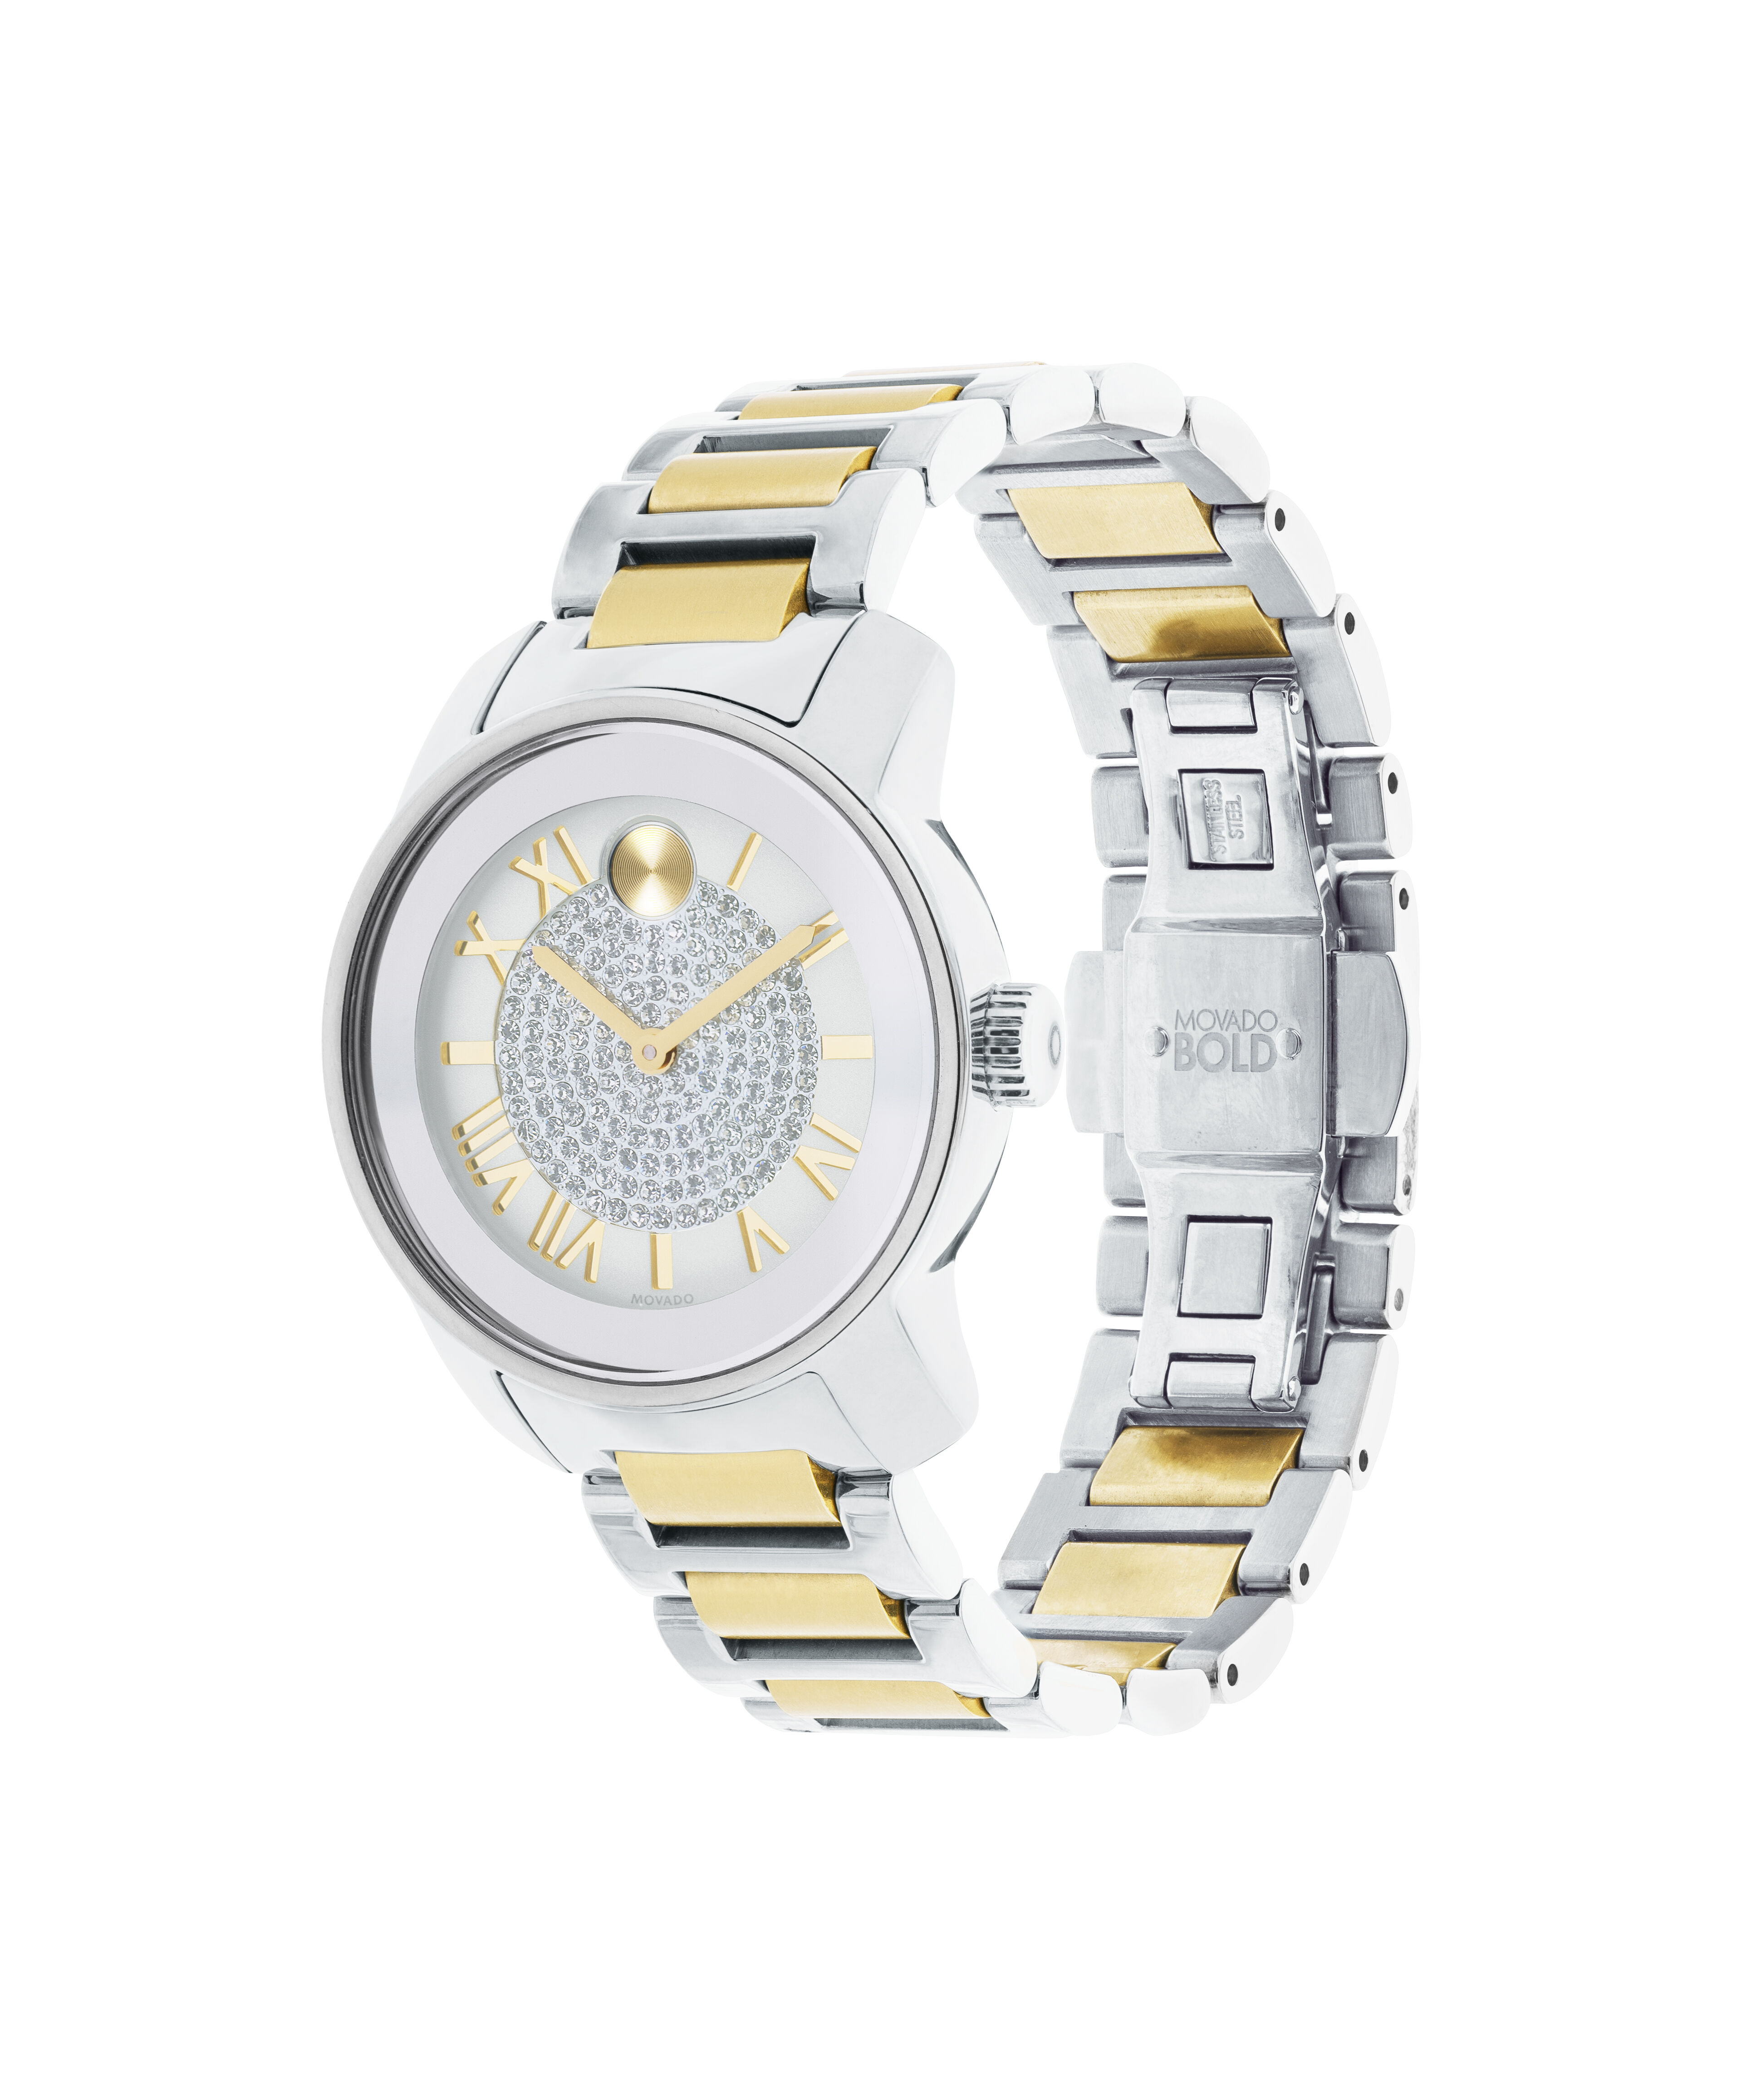 Wholesale Replica G Shock Watches